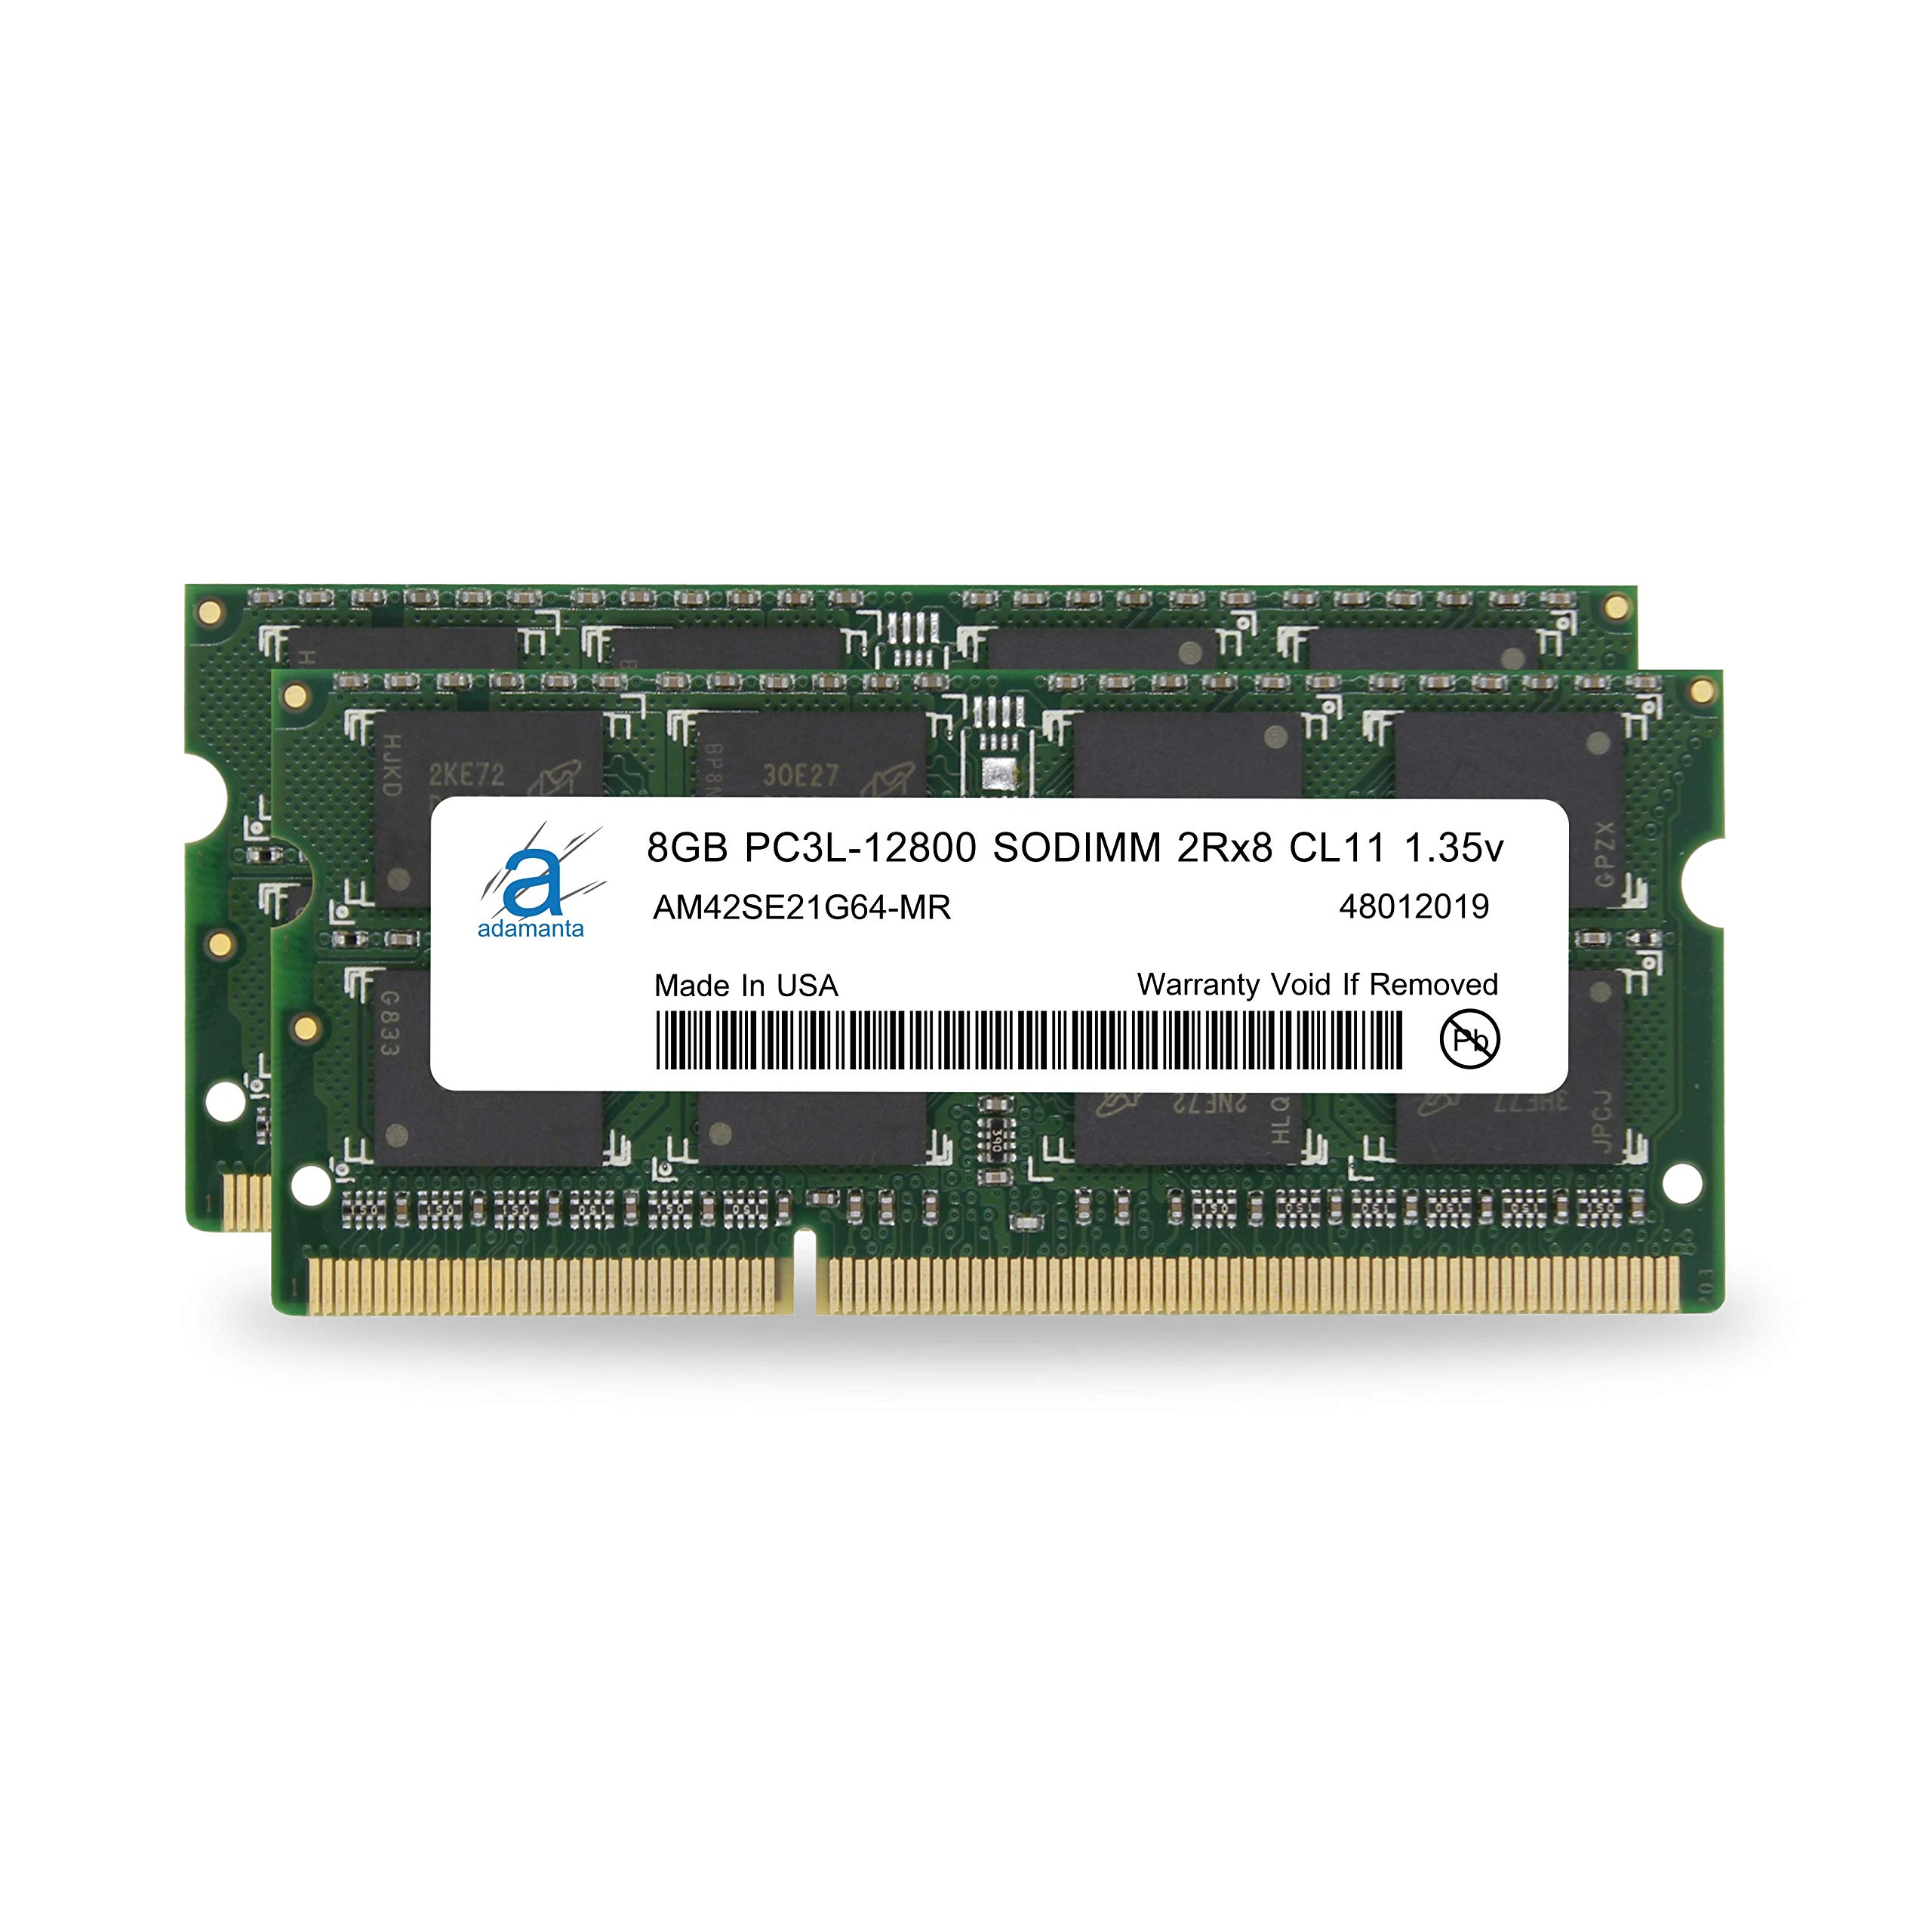 Adamanta 16GB (2x8GB) Apple Memory Upgrade Compatible for iMac, MacBook Pro, Mac Mini DDR3/DDR3L 1600Mhz PC3L-12800 SODIMM 2Rx8 CL11 1.35v RAM by Adamanta